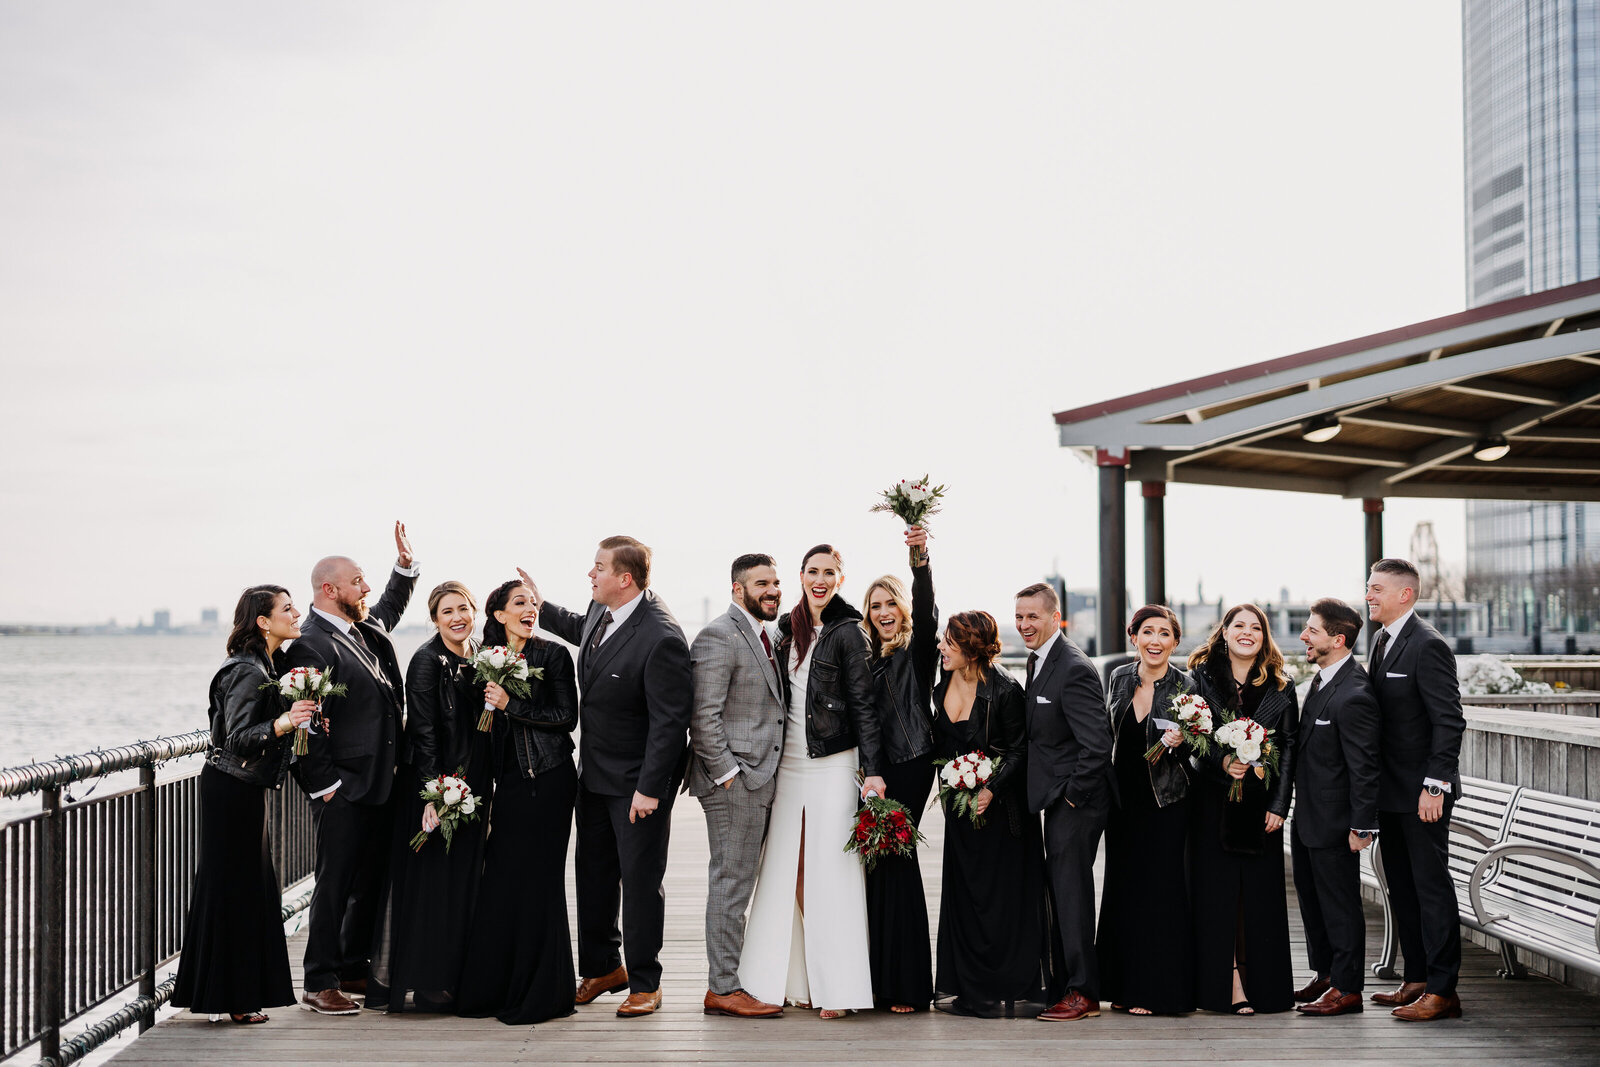 edgy bridal party with leather jackets